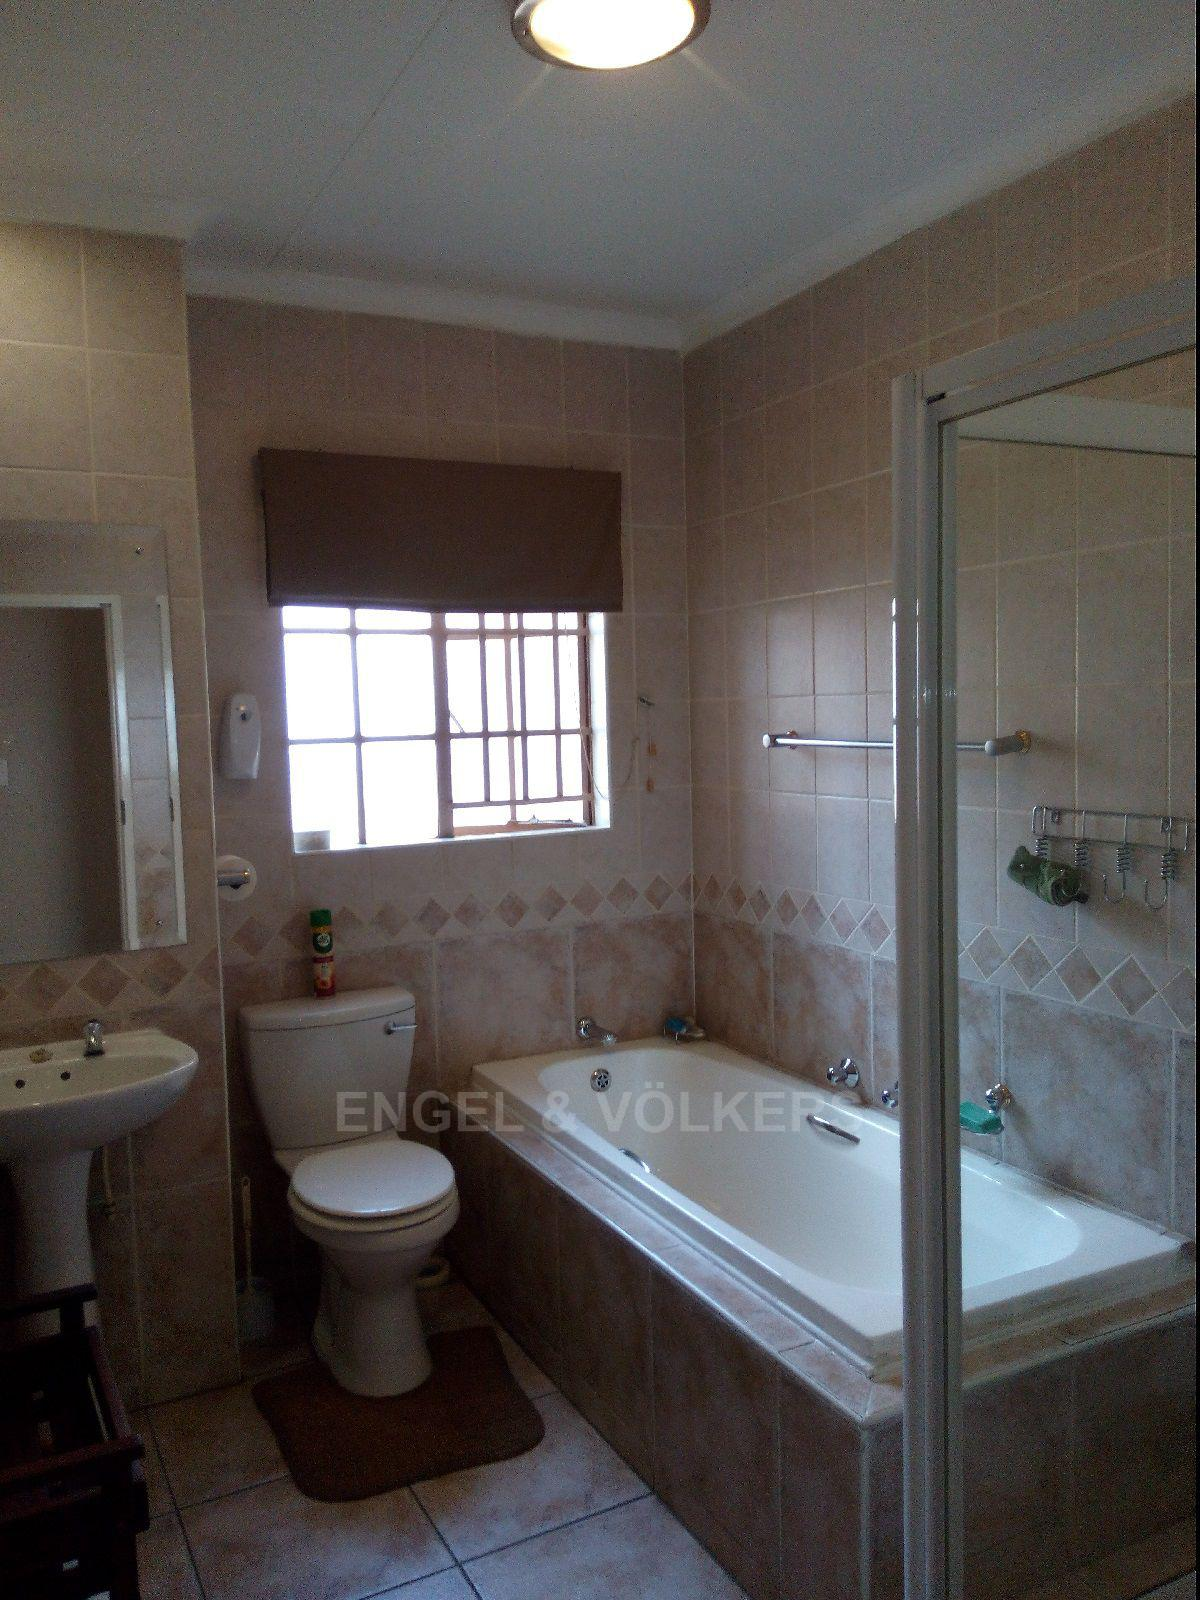 Amberfield Heights property for sale. Ref No: 13554956. Picture no 26